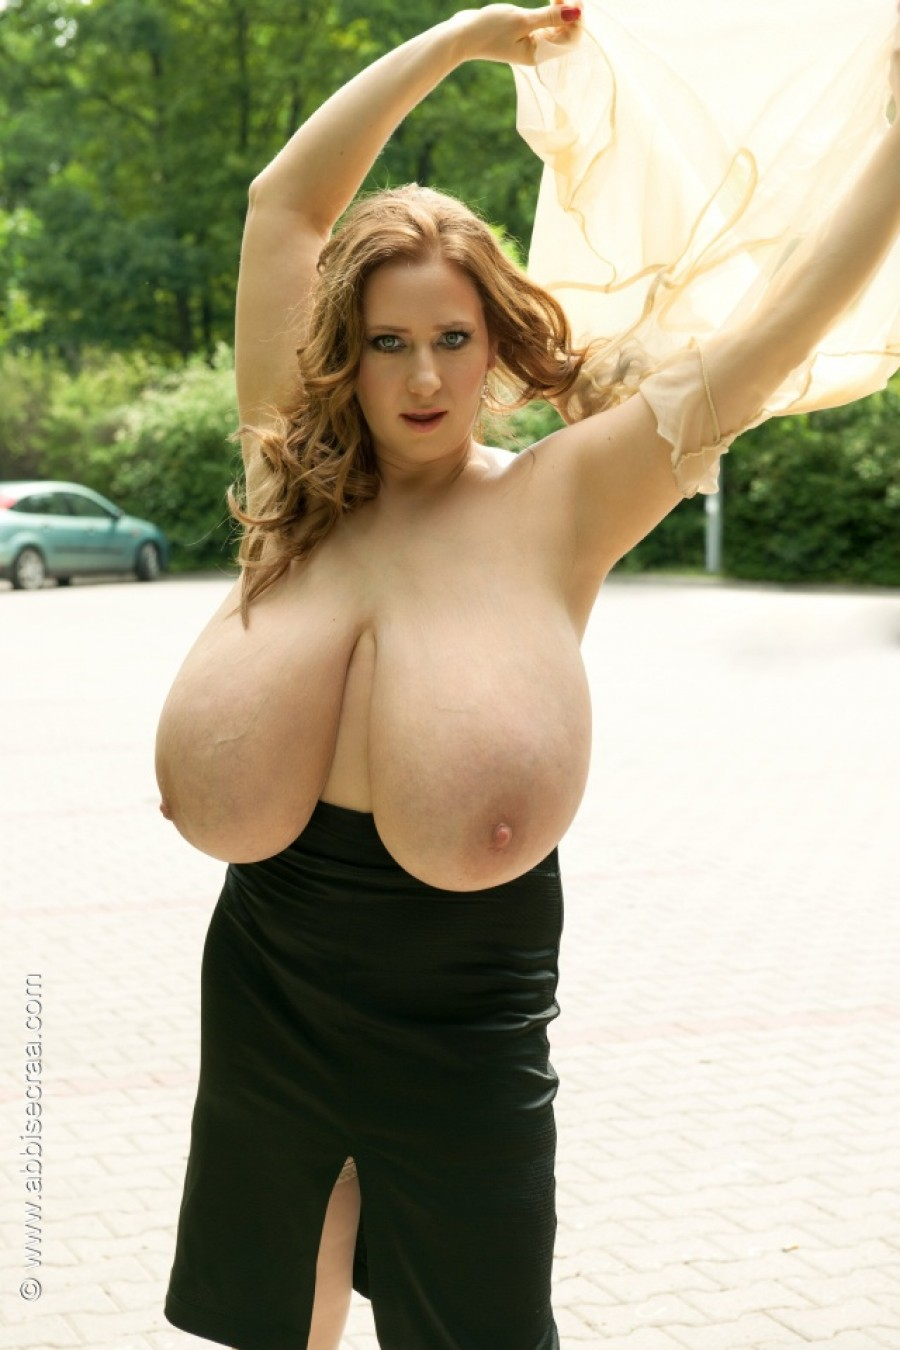 Abbi Secraa's breasts evolution - Hi-res pictures